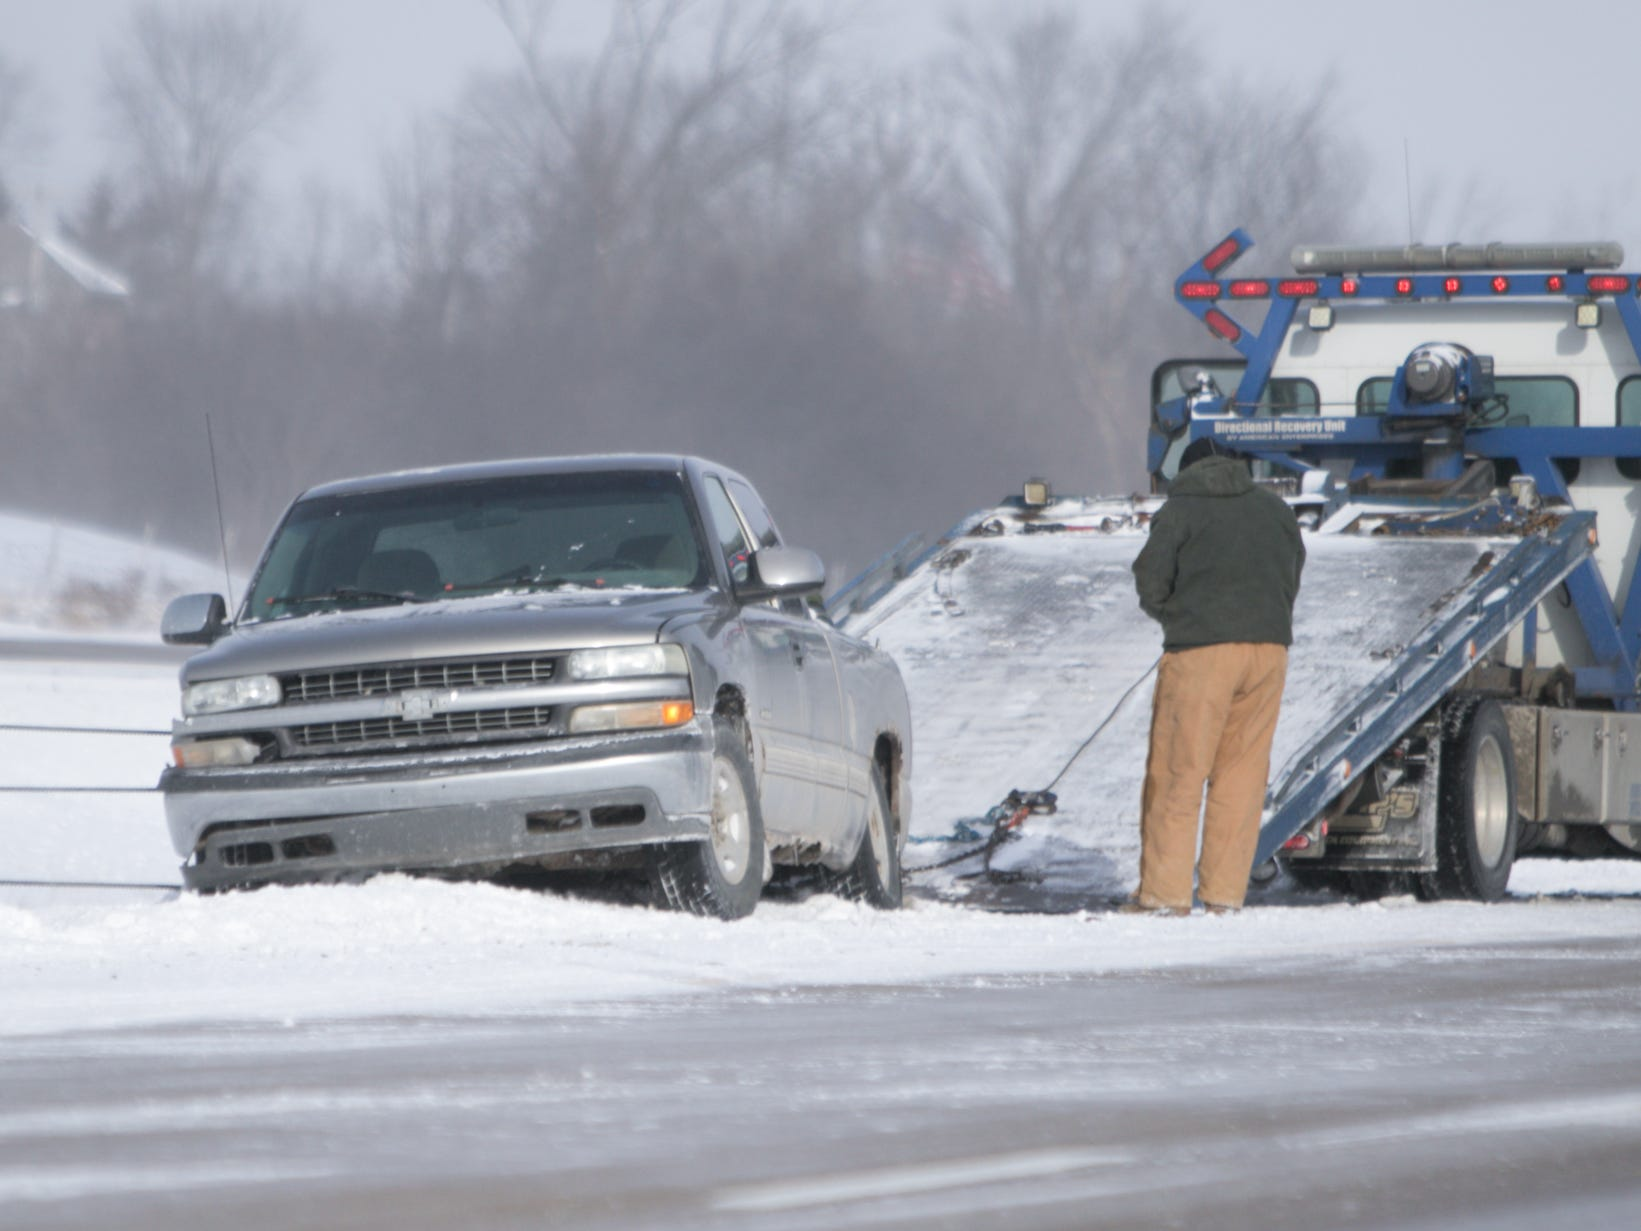 A tow truck driver hooks up a pickup truck to his flatbed, the pickup in the median of U.S. 23 facing opposite the direction of traffic Wednesday, Jan. 30, 2019 north of Clyde Rd. Icy roads and strong winds may have been factors in this and other accidents on the freeway Wednesday, Jan. 30, 2019.